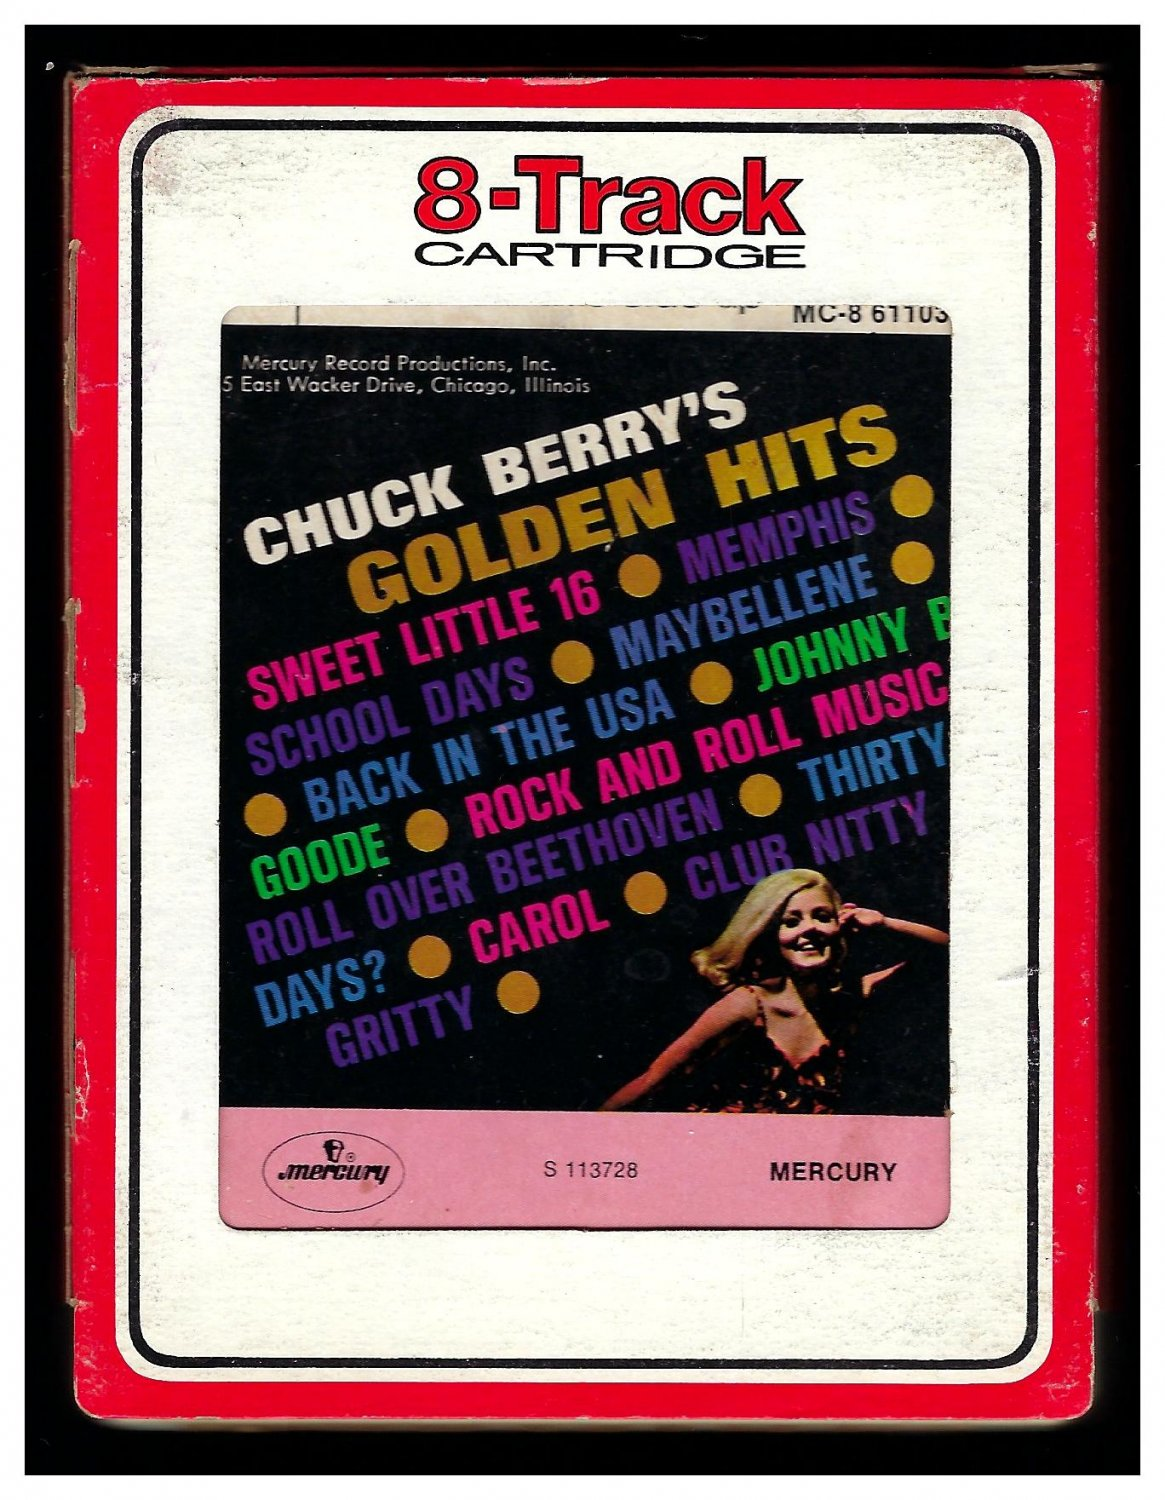 Chuck Berry - Golden Hits 1966 RCA MERCURY Reissue A33 8-TRACK TAPE